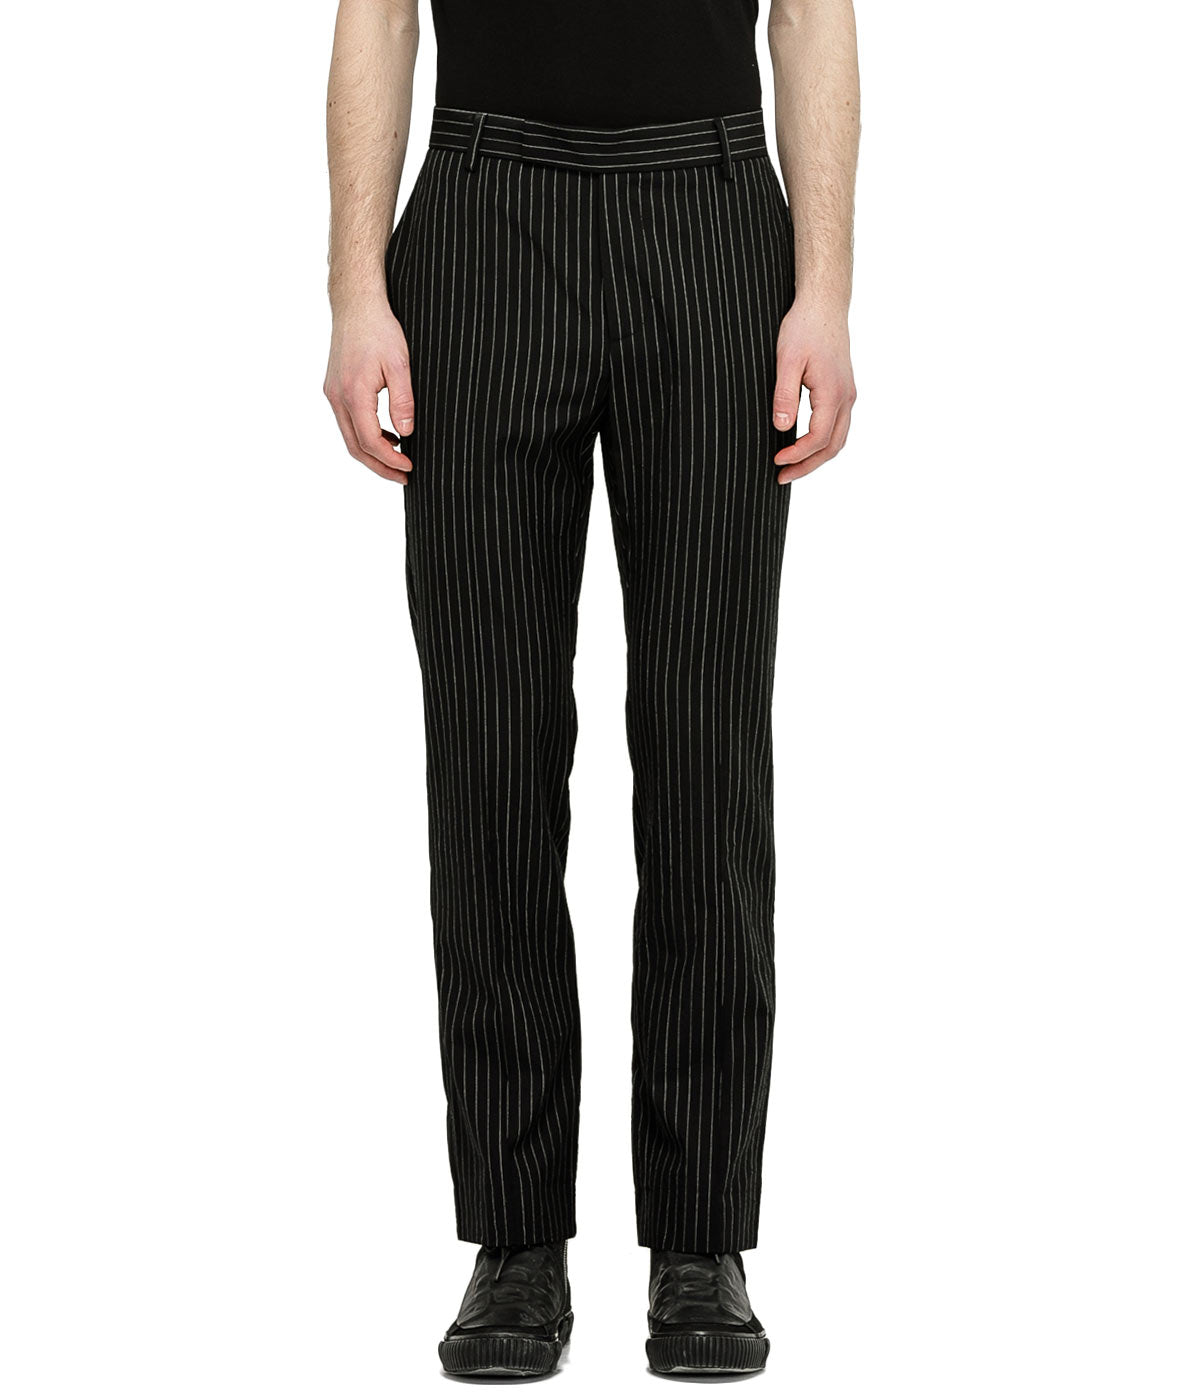 Black Striped Slim Trouser